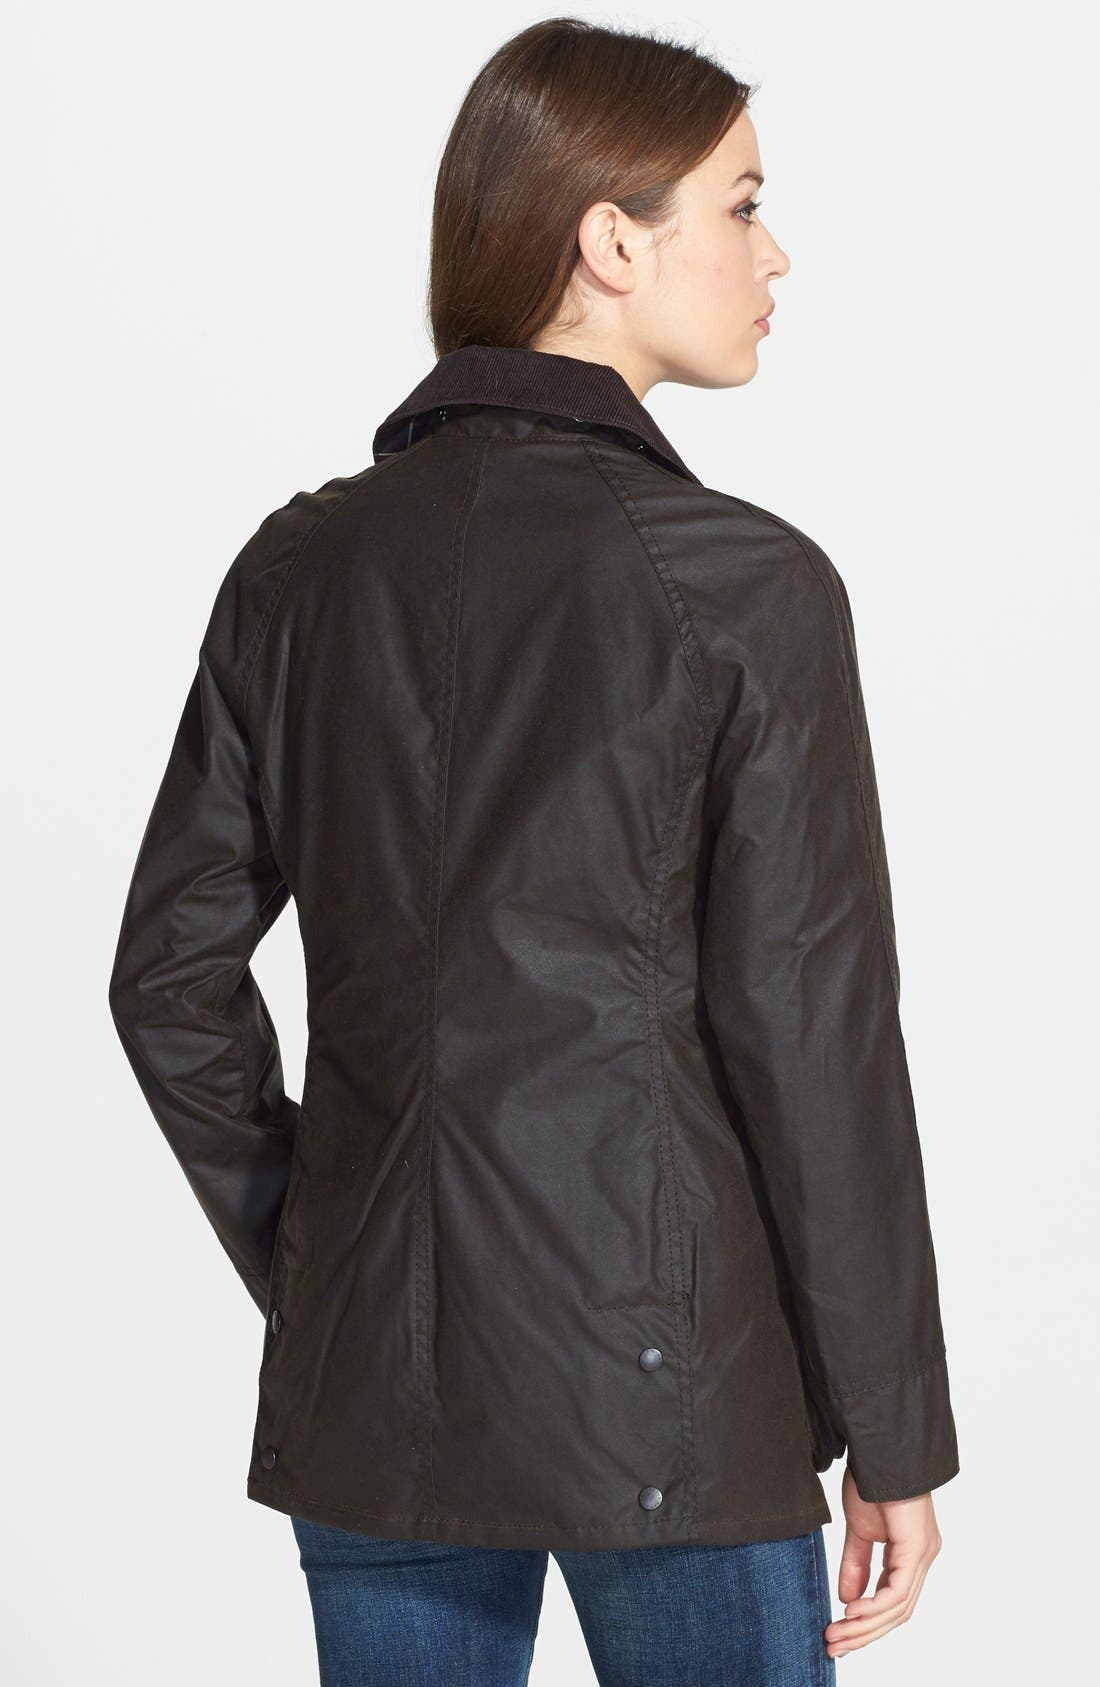 Beadnell Waxed Cotton Jacket,                             Alternate thumbnail 9, color,                             OLIVE